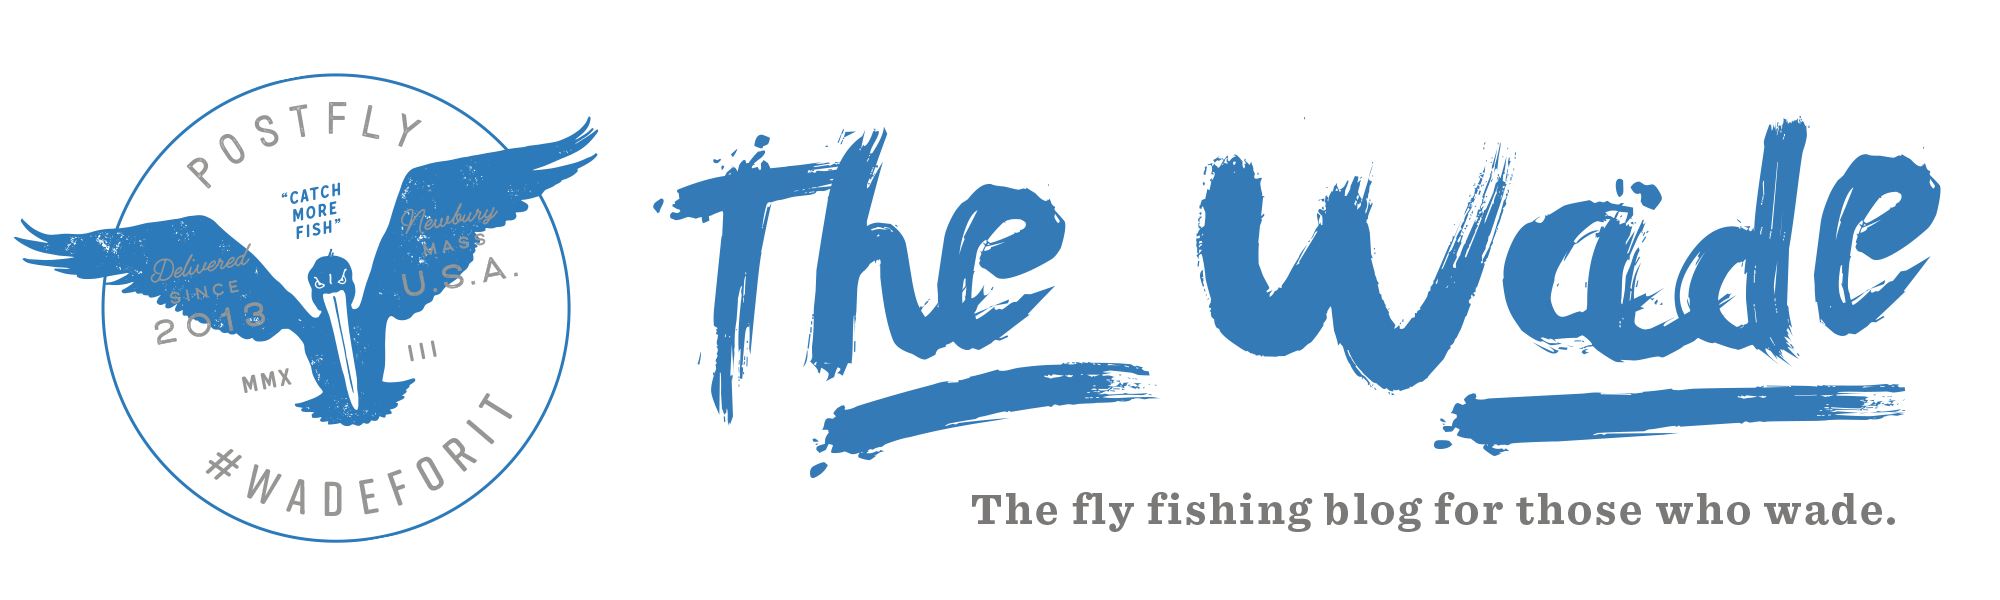 The Wade Fly Fishing Blog by Postfly